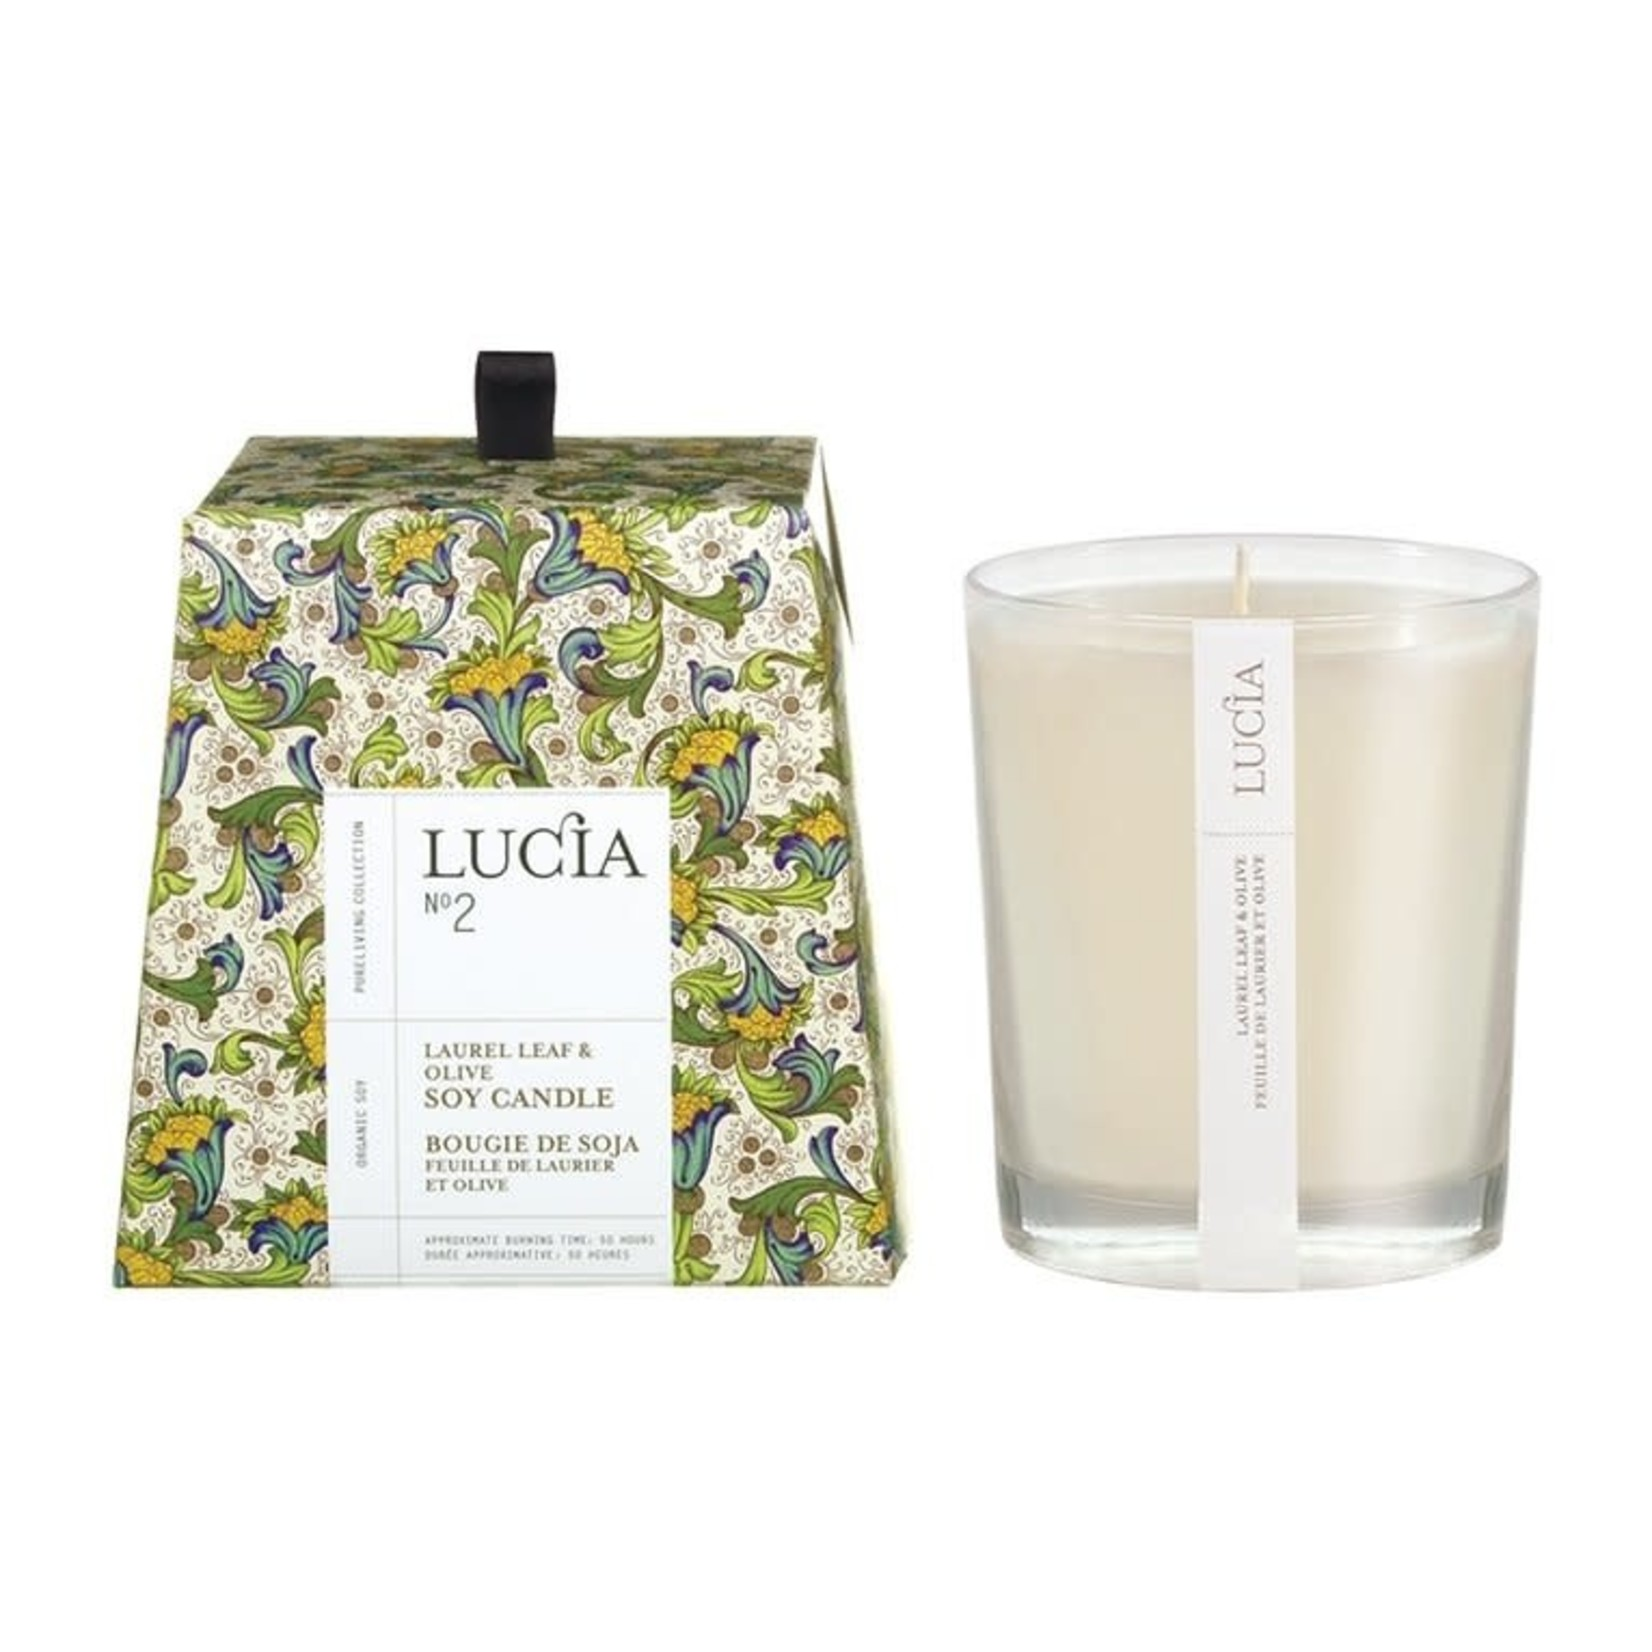 Lucia LUCIA Bougie 50H no2